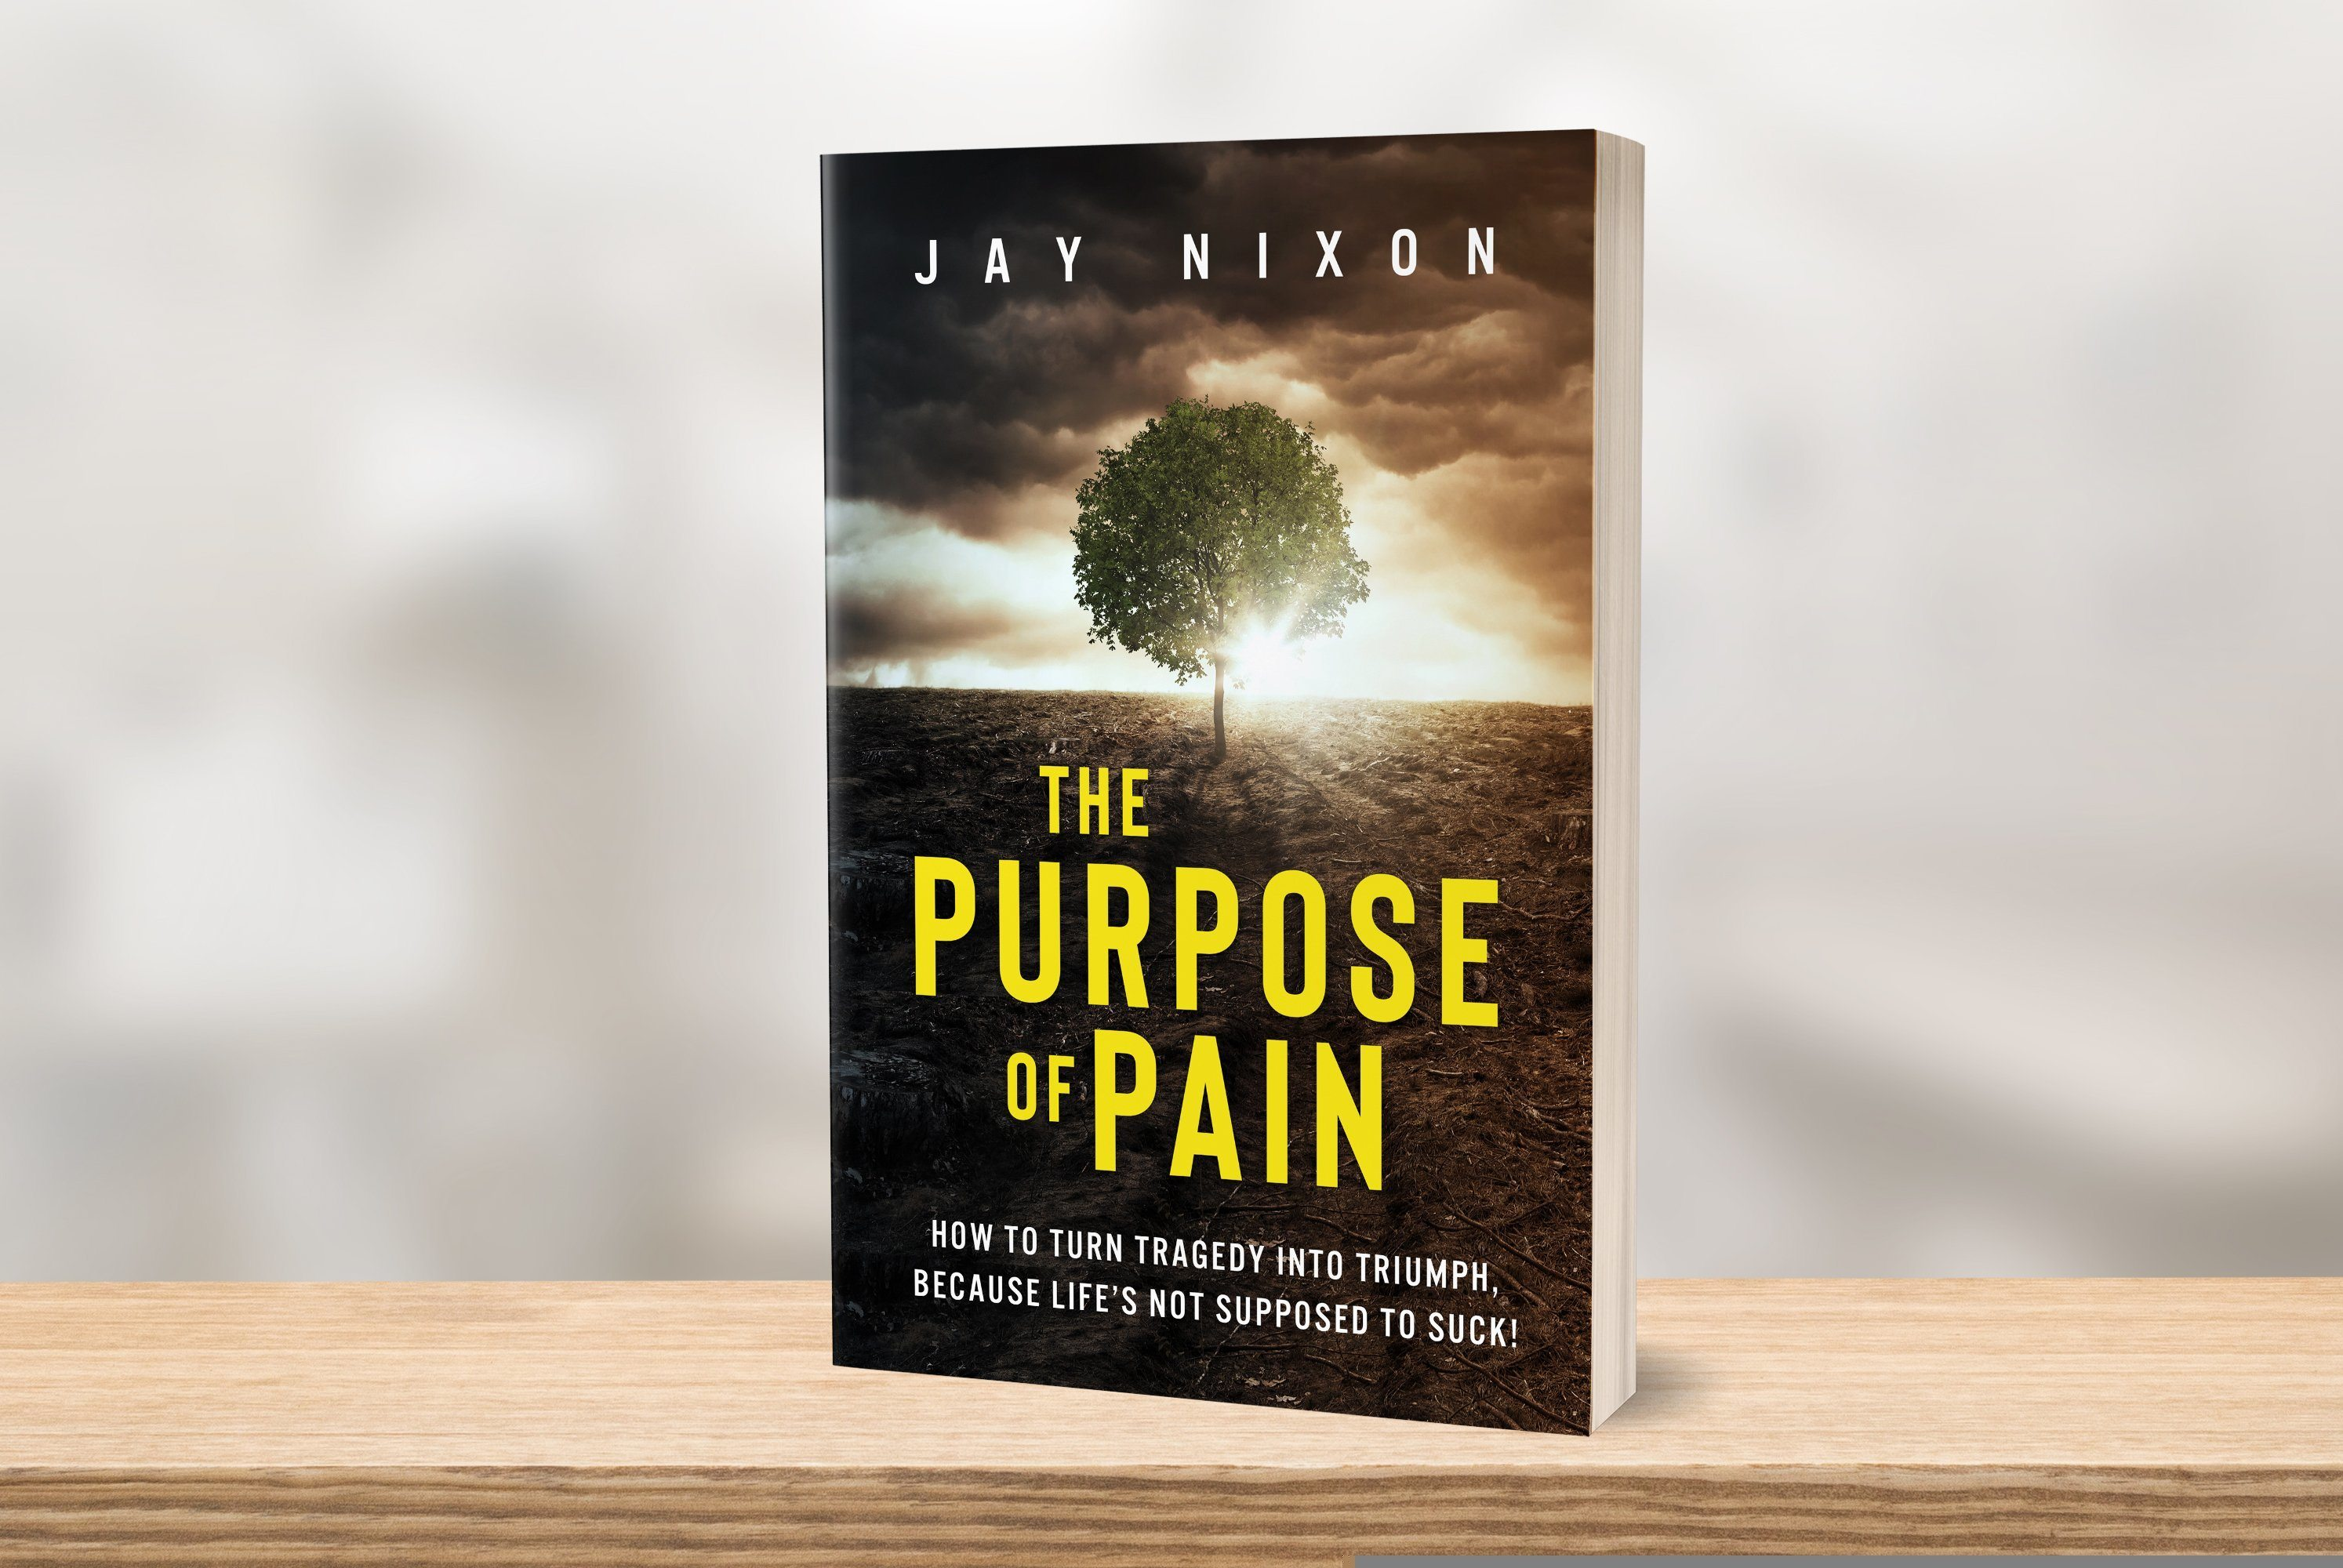 Jay Nixon - The Purpose of Pain